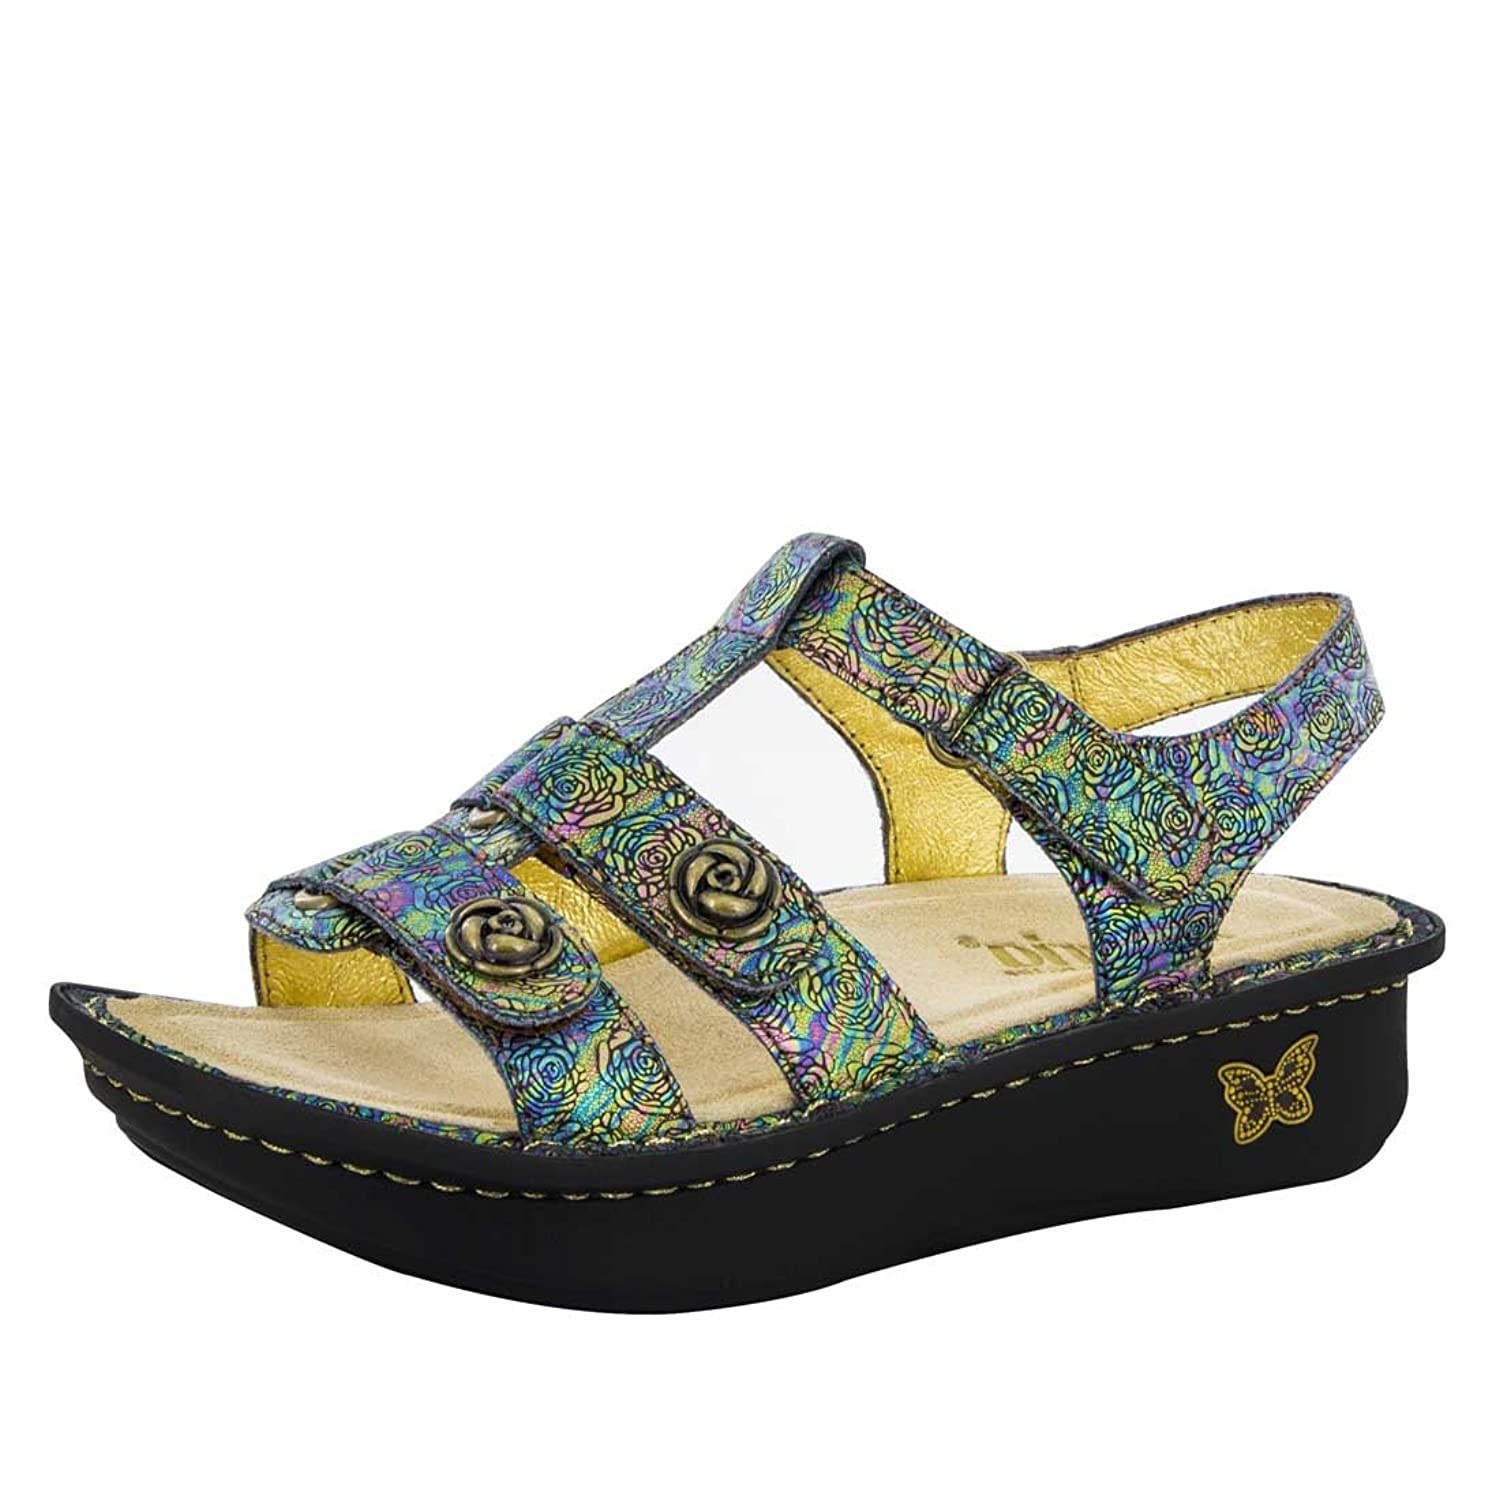 Women's sandals with removable insoles - Alegria Women S Kleo Gladiator Sandal